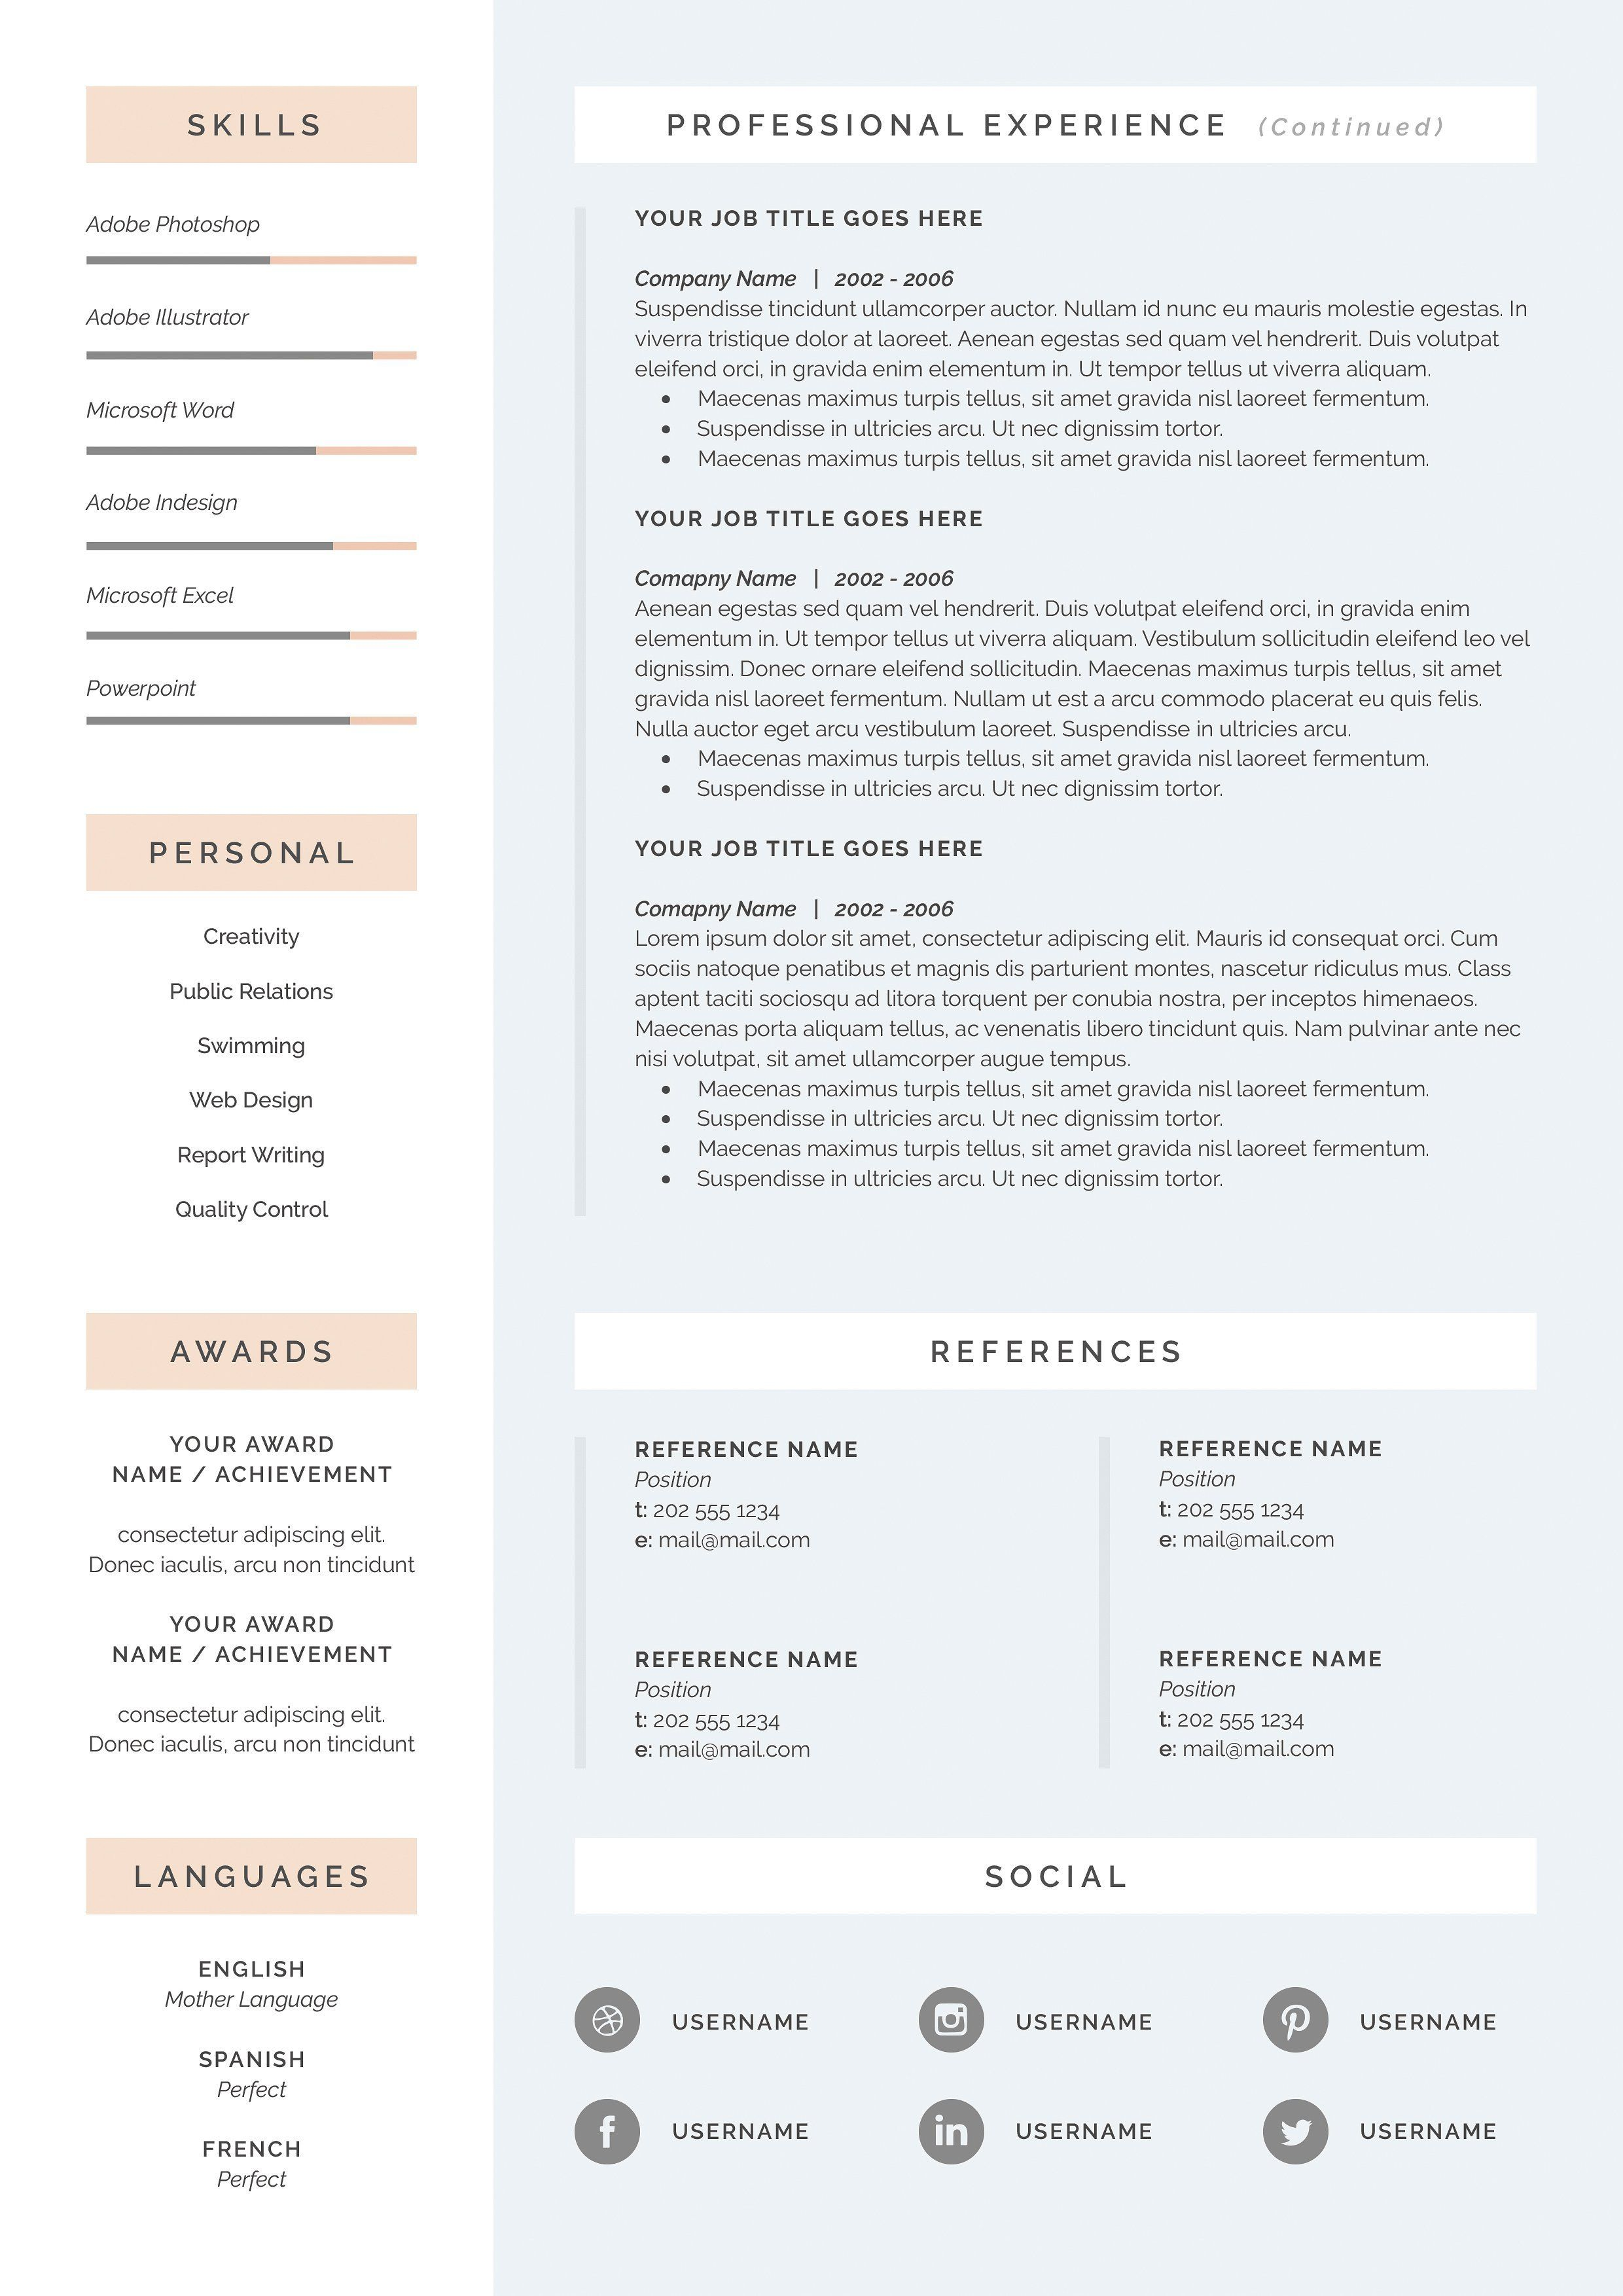 word resume & cover letter template call center representative sample summary for with no experience career objective job